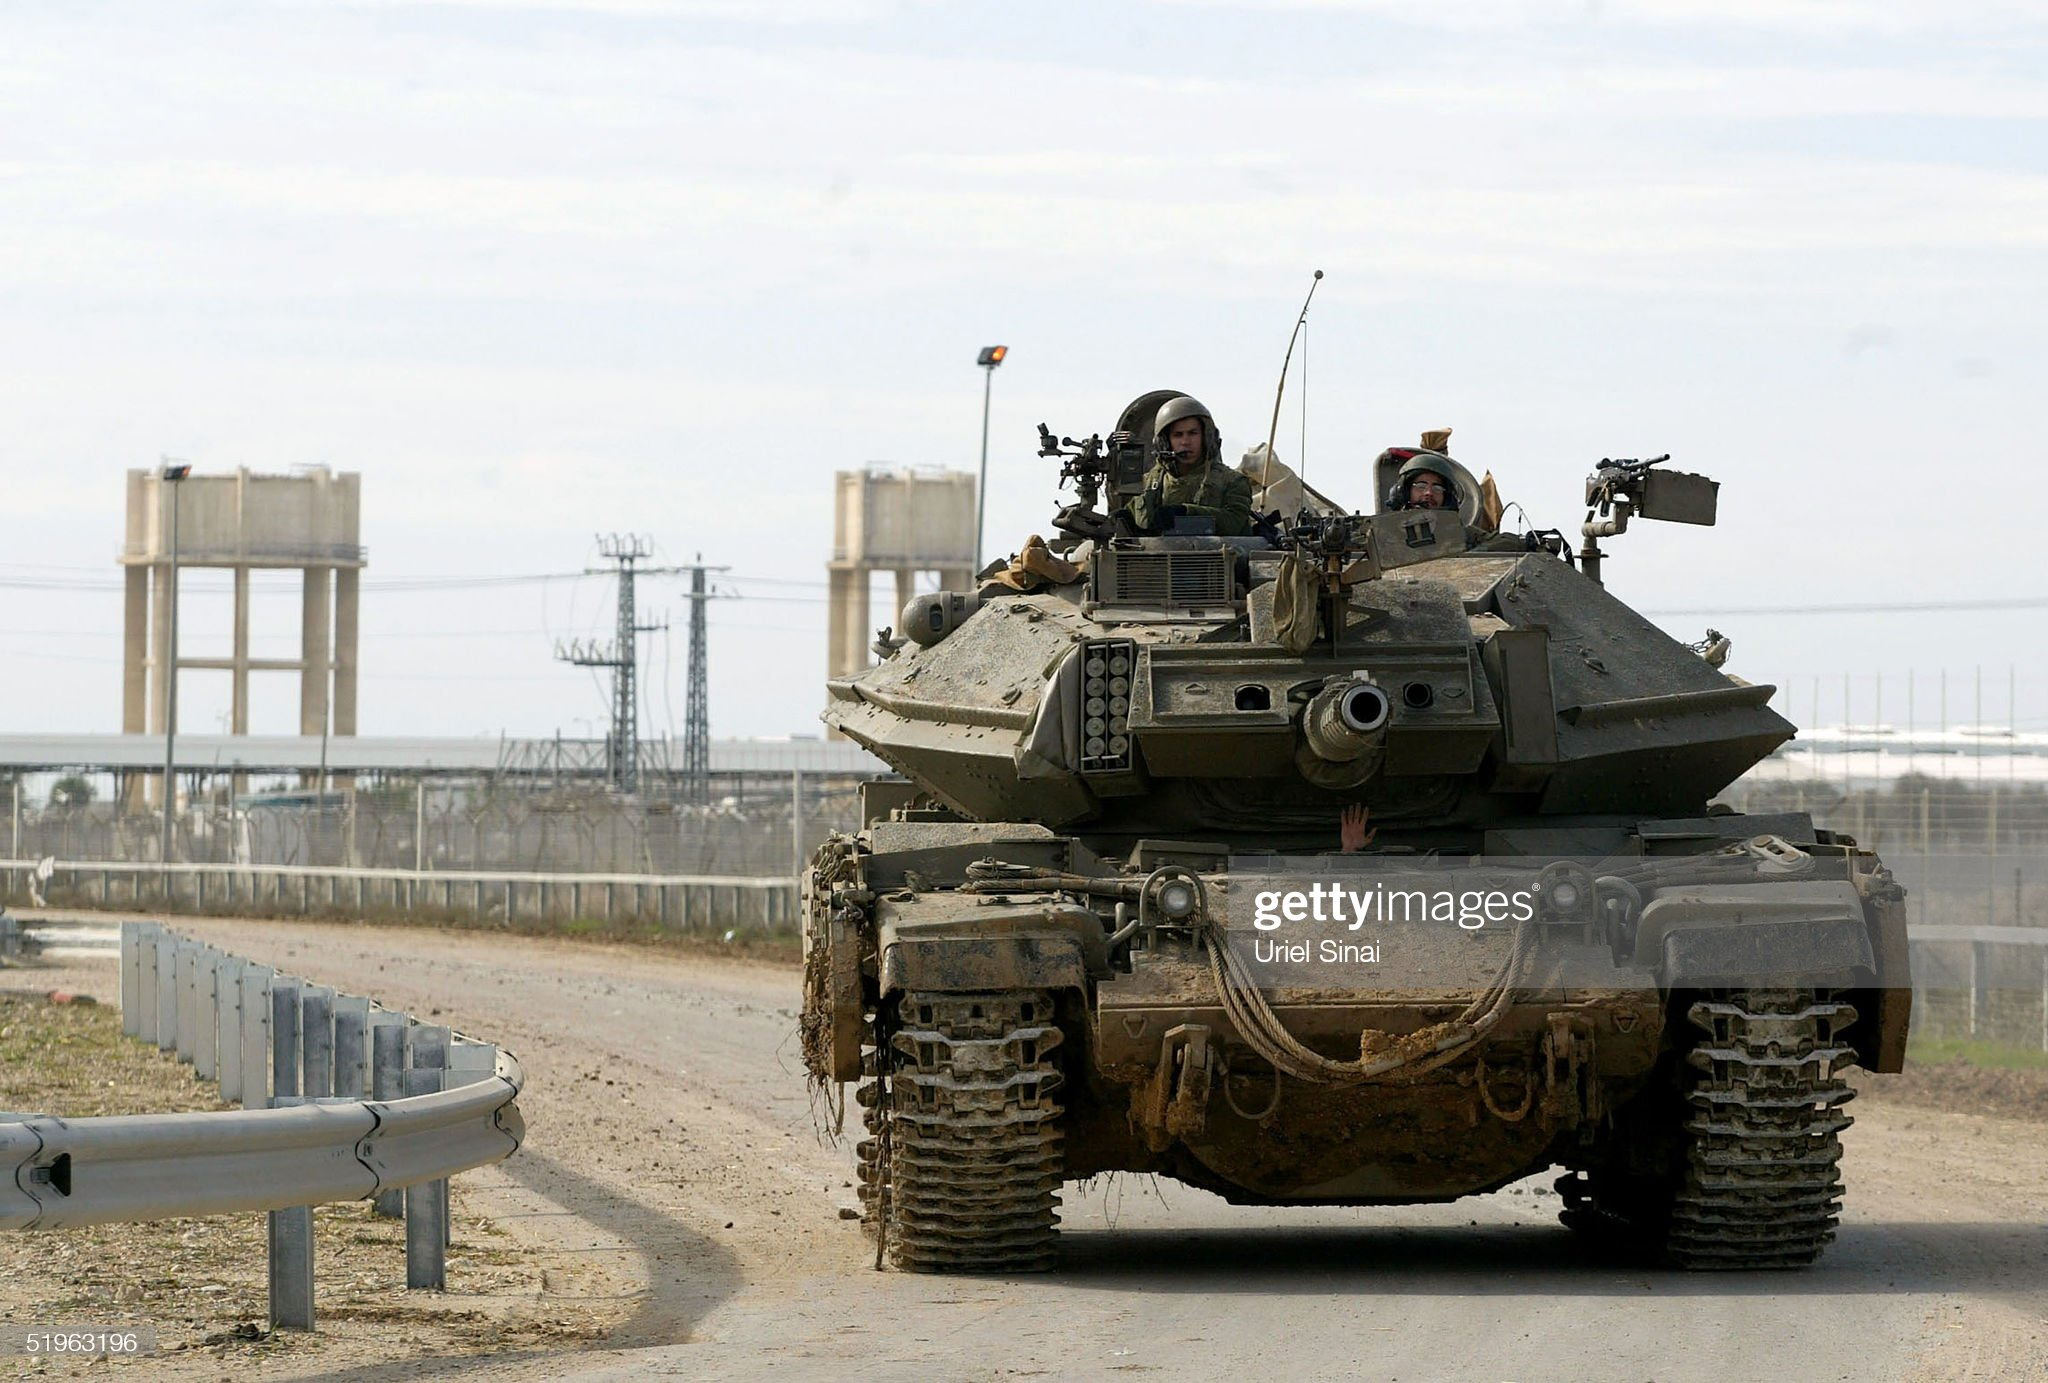 https://media.gettyimages.com/photos/an-israeli-tank-positions-itself-near-the-area-of-a-suicide-attack-picture-id51963196?s=2048x2048